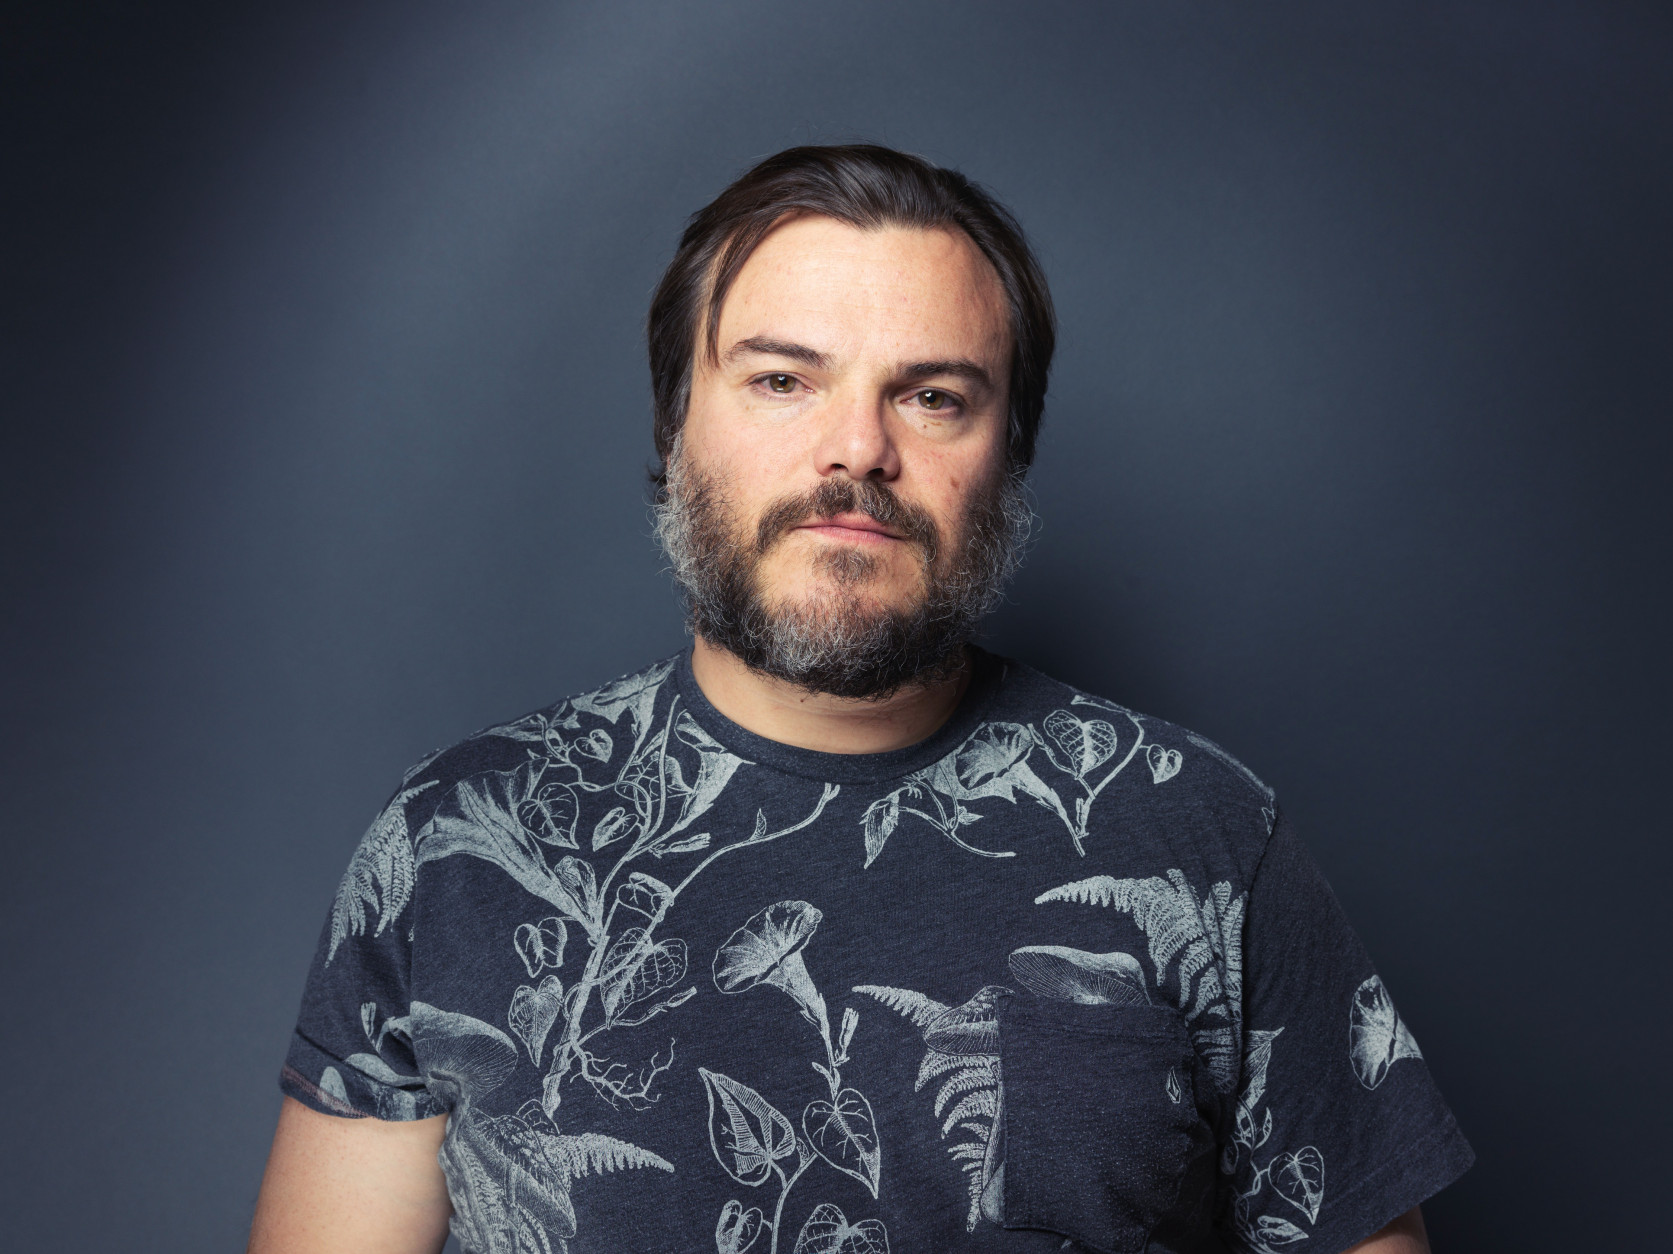 Pictures of Jack Black  Pictures Of Celebrities